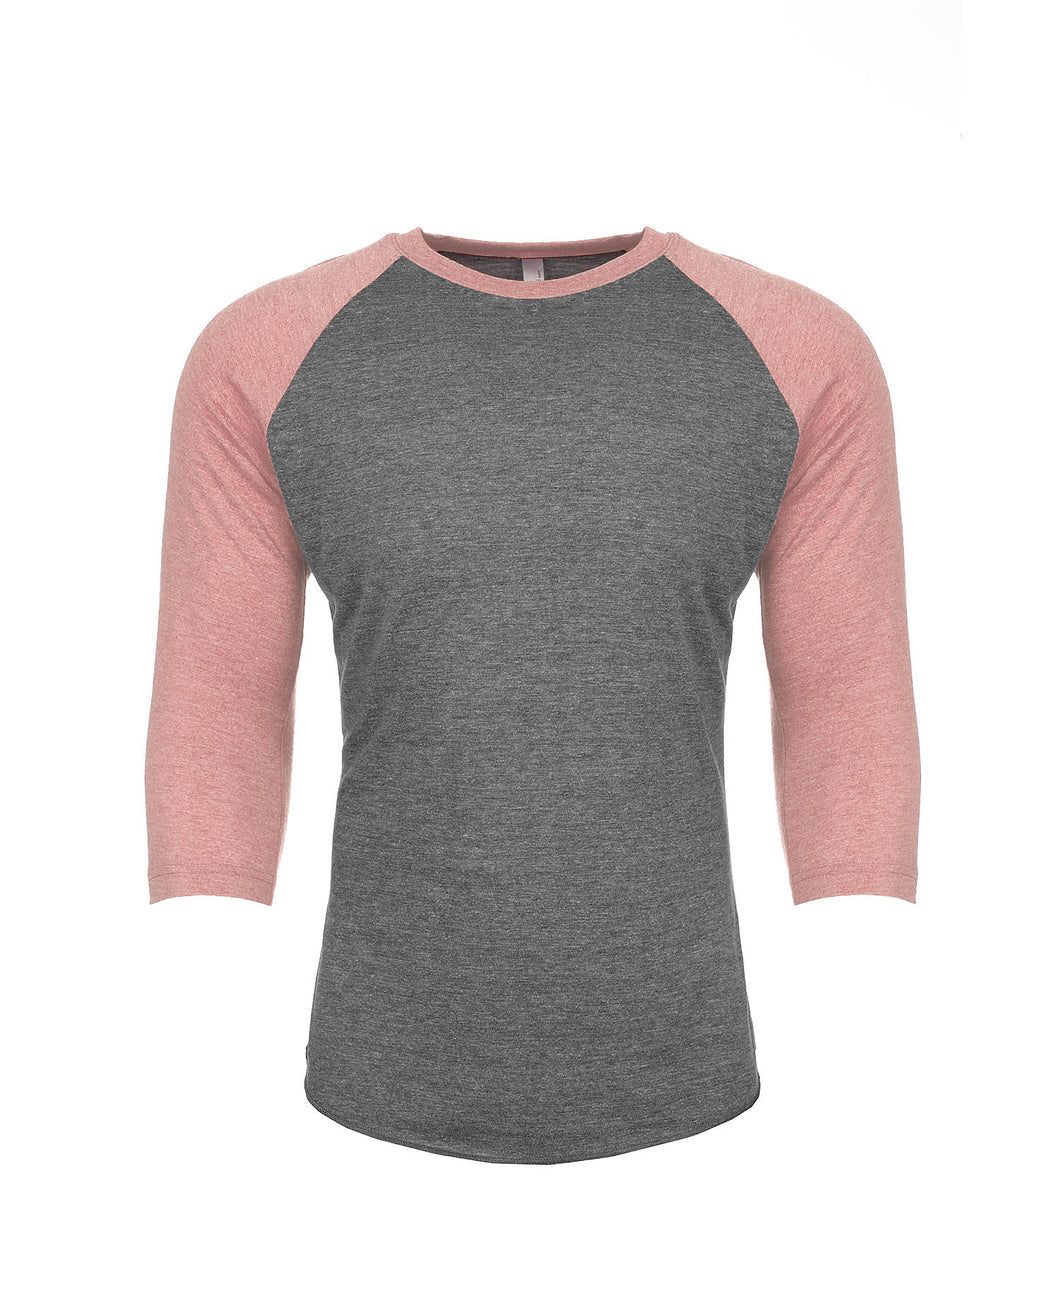 6051 - Next Level - Unisex Tri-Blend Three-Quarter Sleeve Baseball Raglan Tee - XS to L